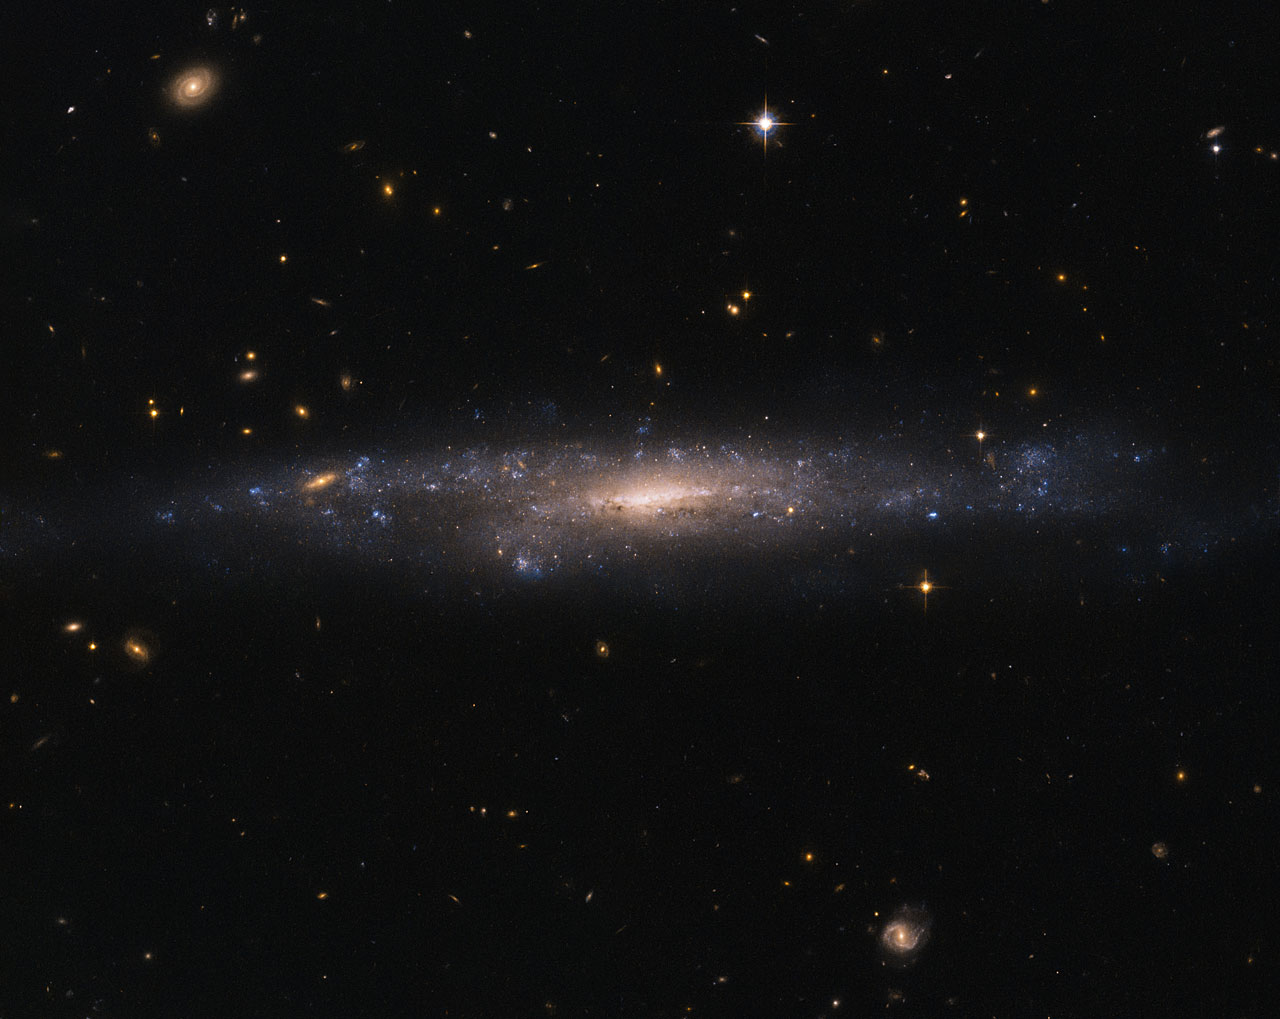 Hubble sees galaxy hiding in the night sky nasa thecheapjerseys Images